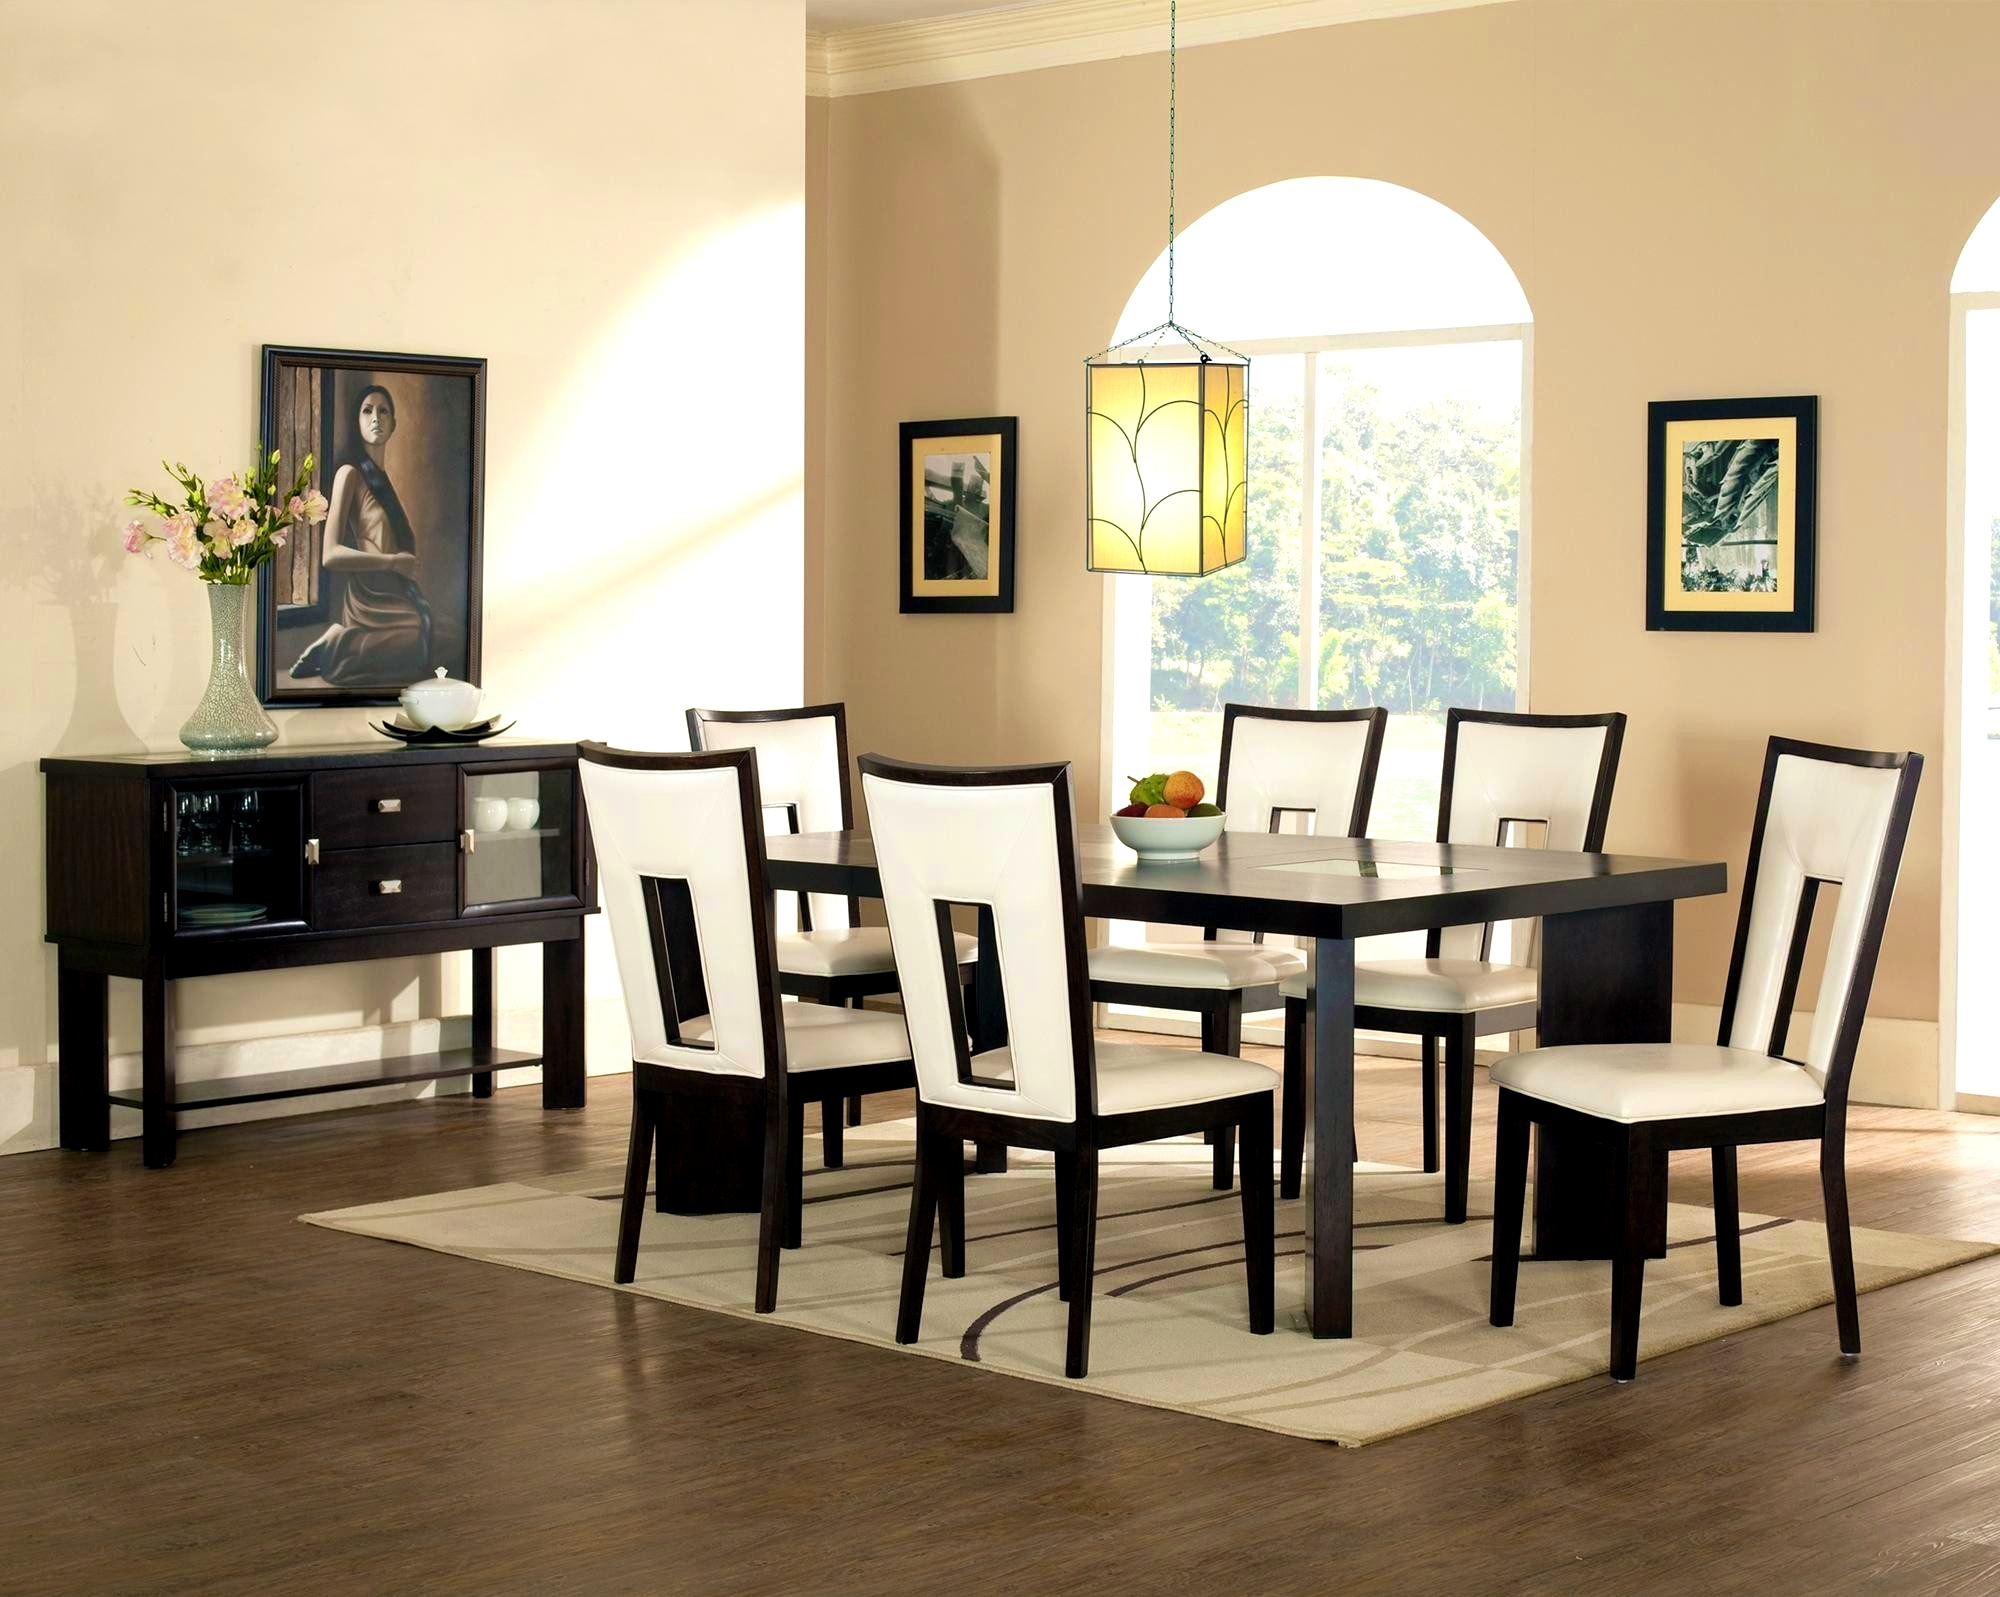 95 Dining Room Furniture Houston Dining Room Sets Houston